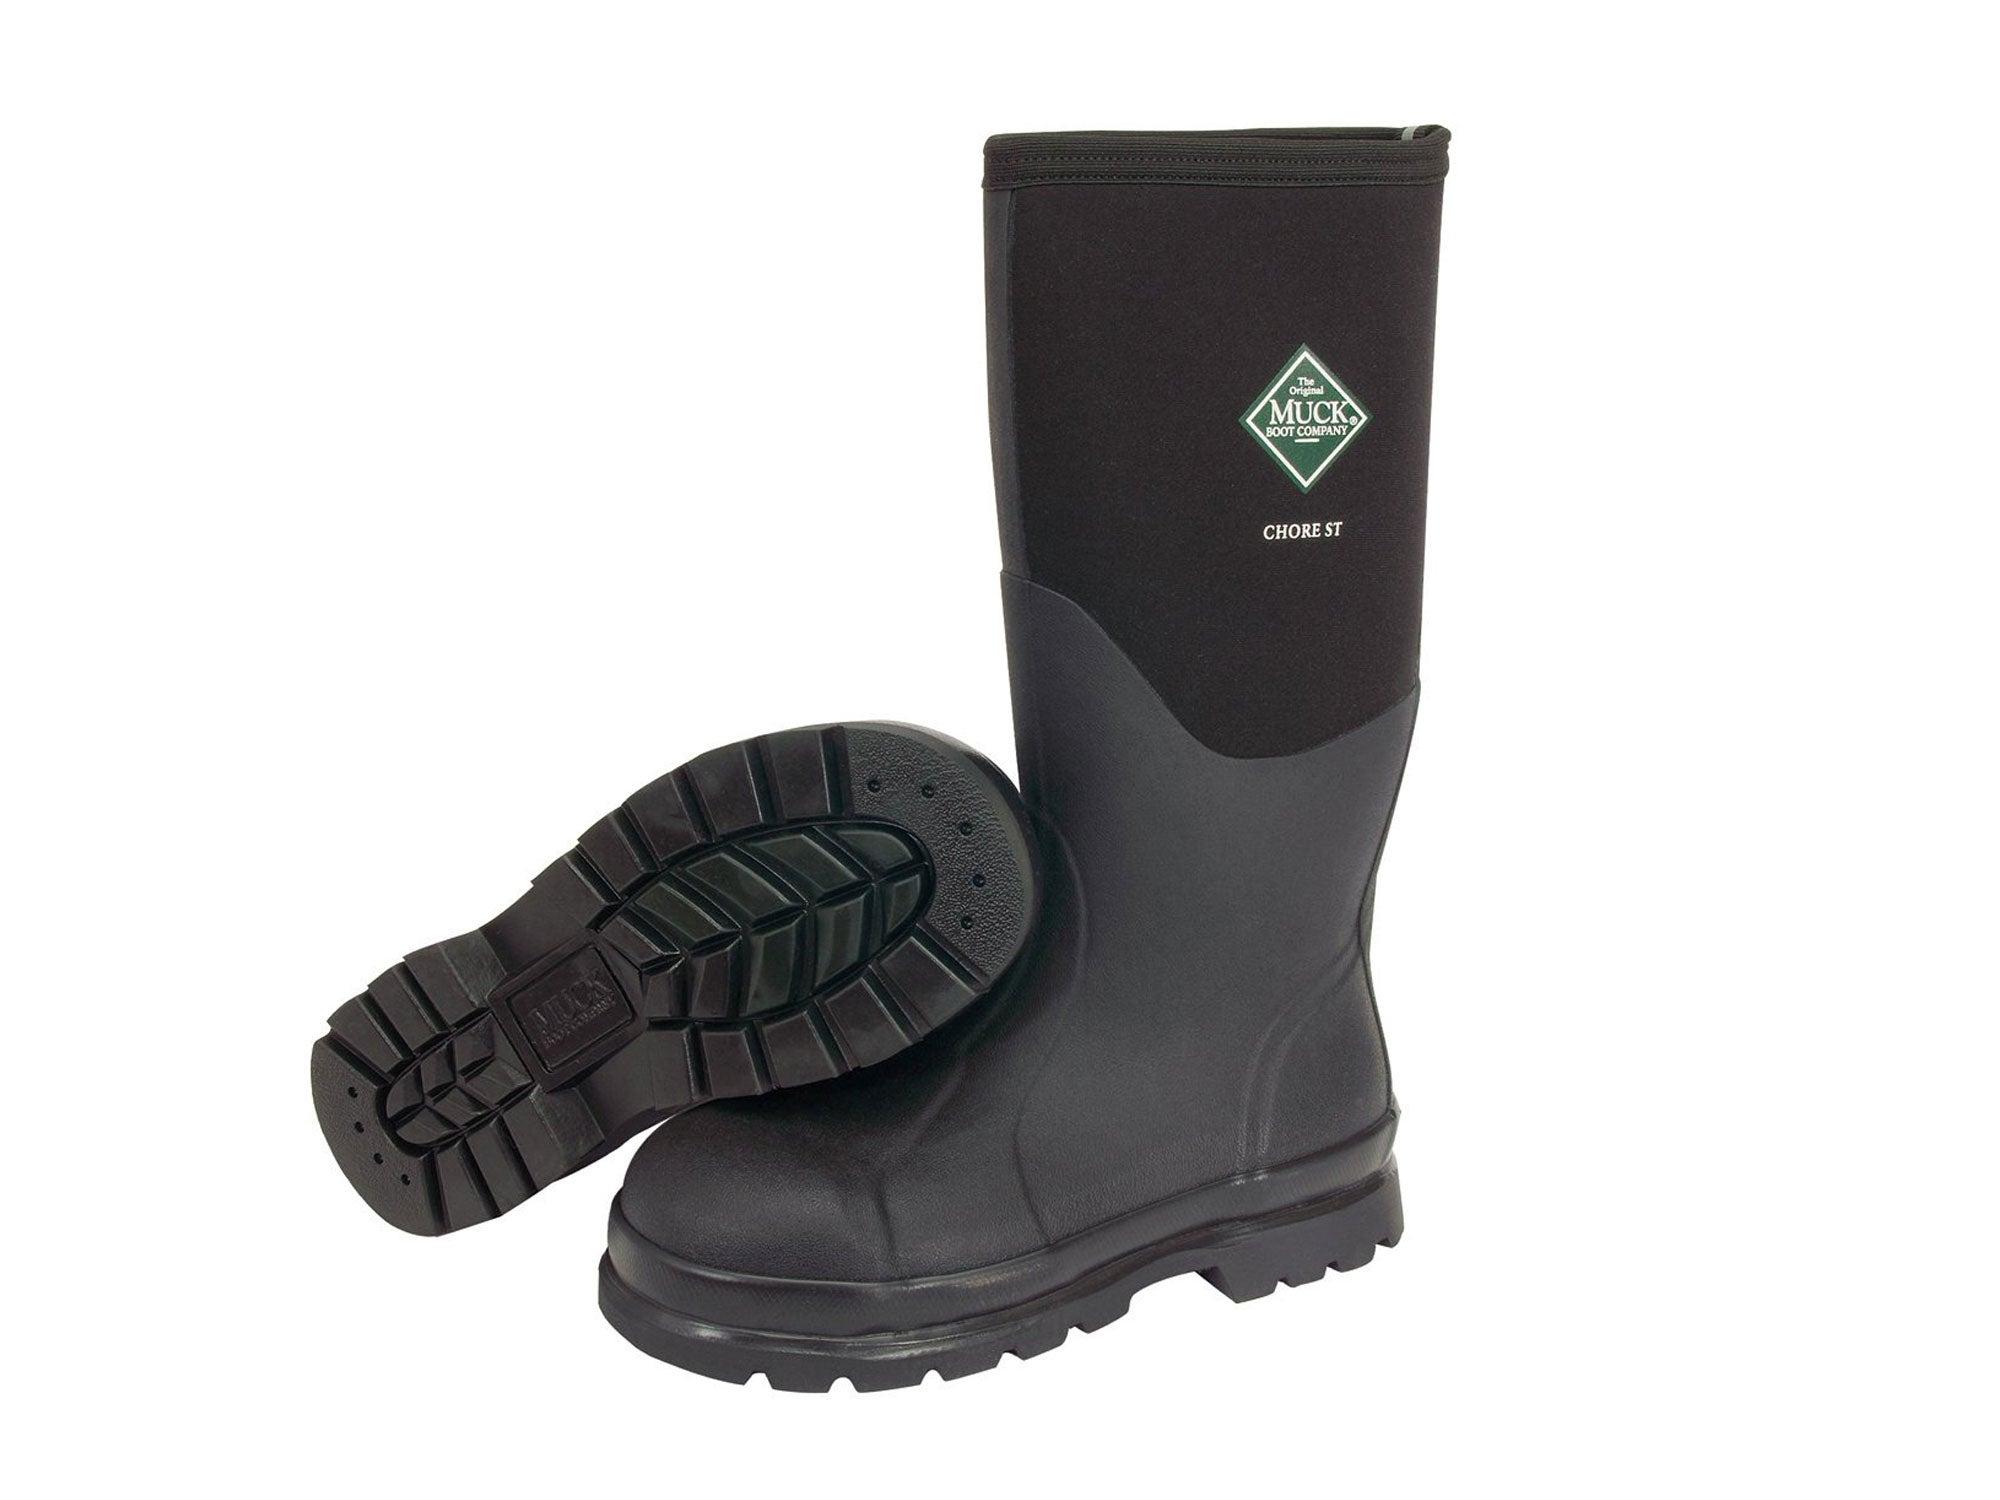 Muck Boots Chore Classic Tall Steel Toe Men's Rubber Work Boot